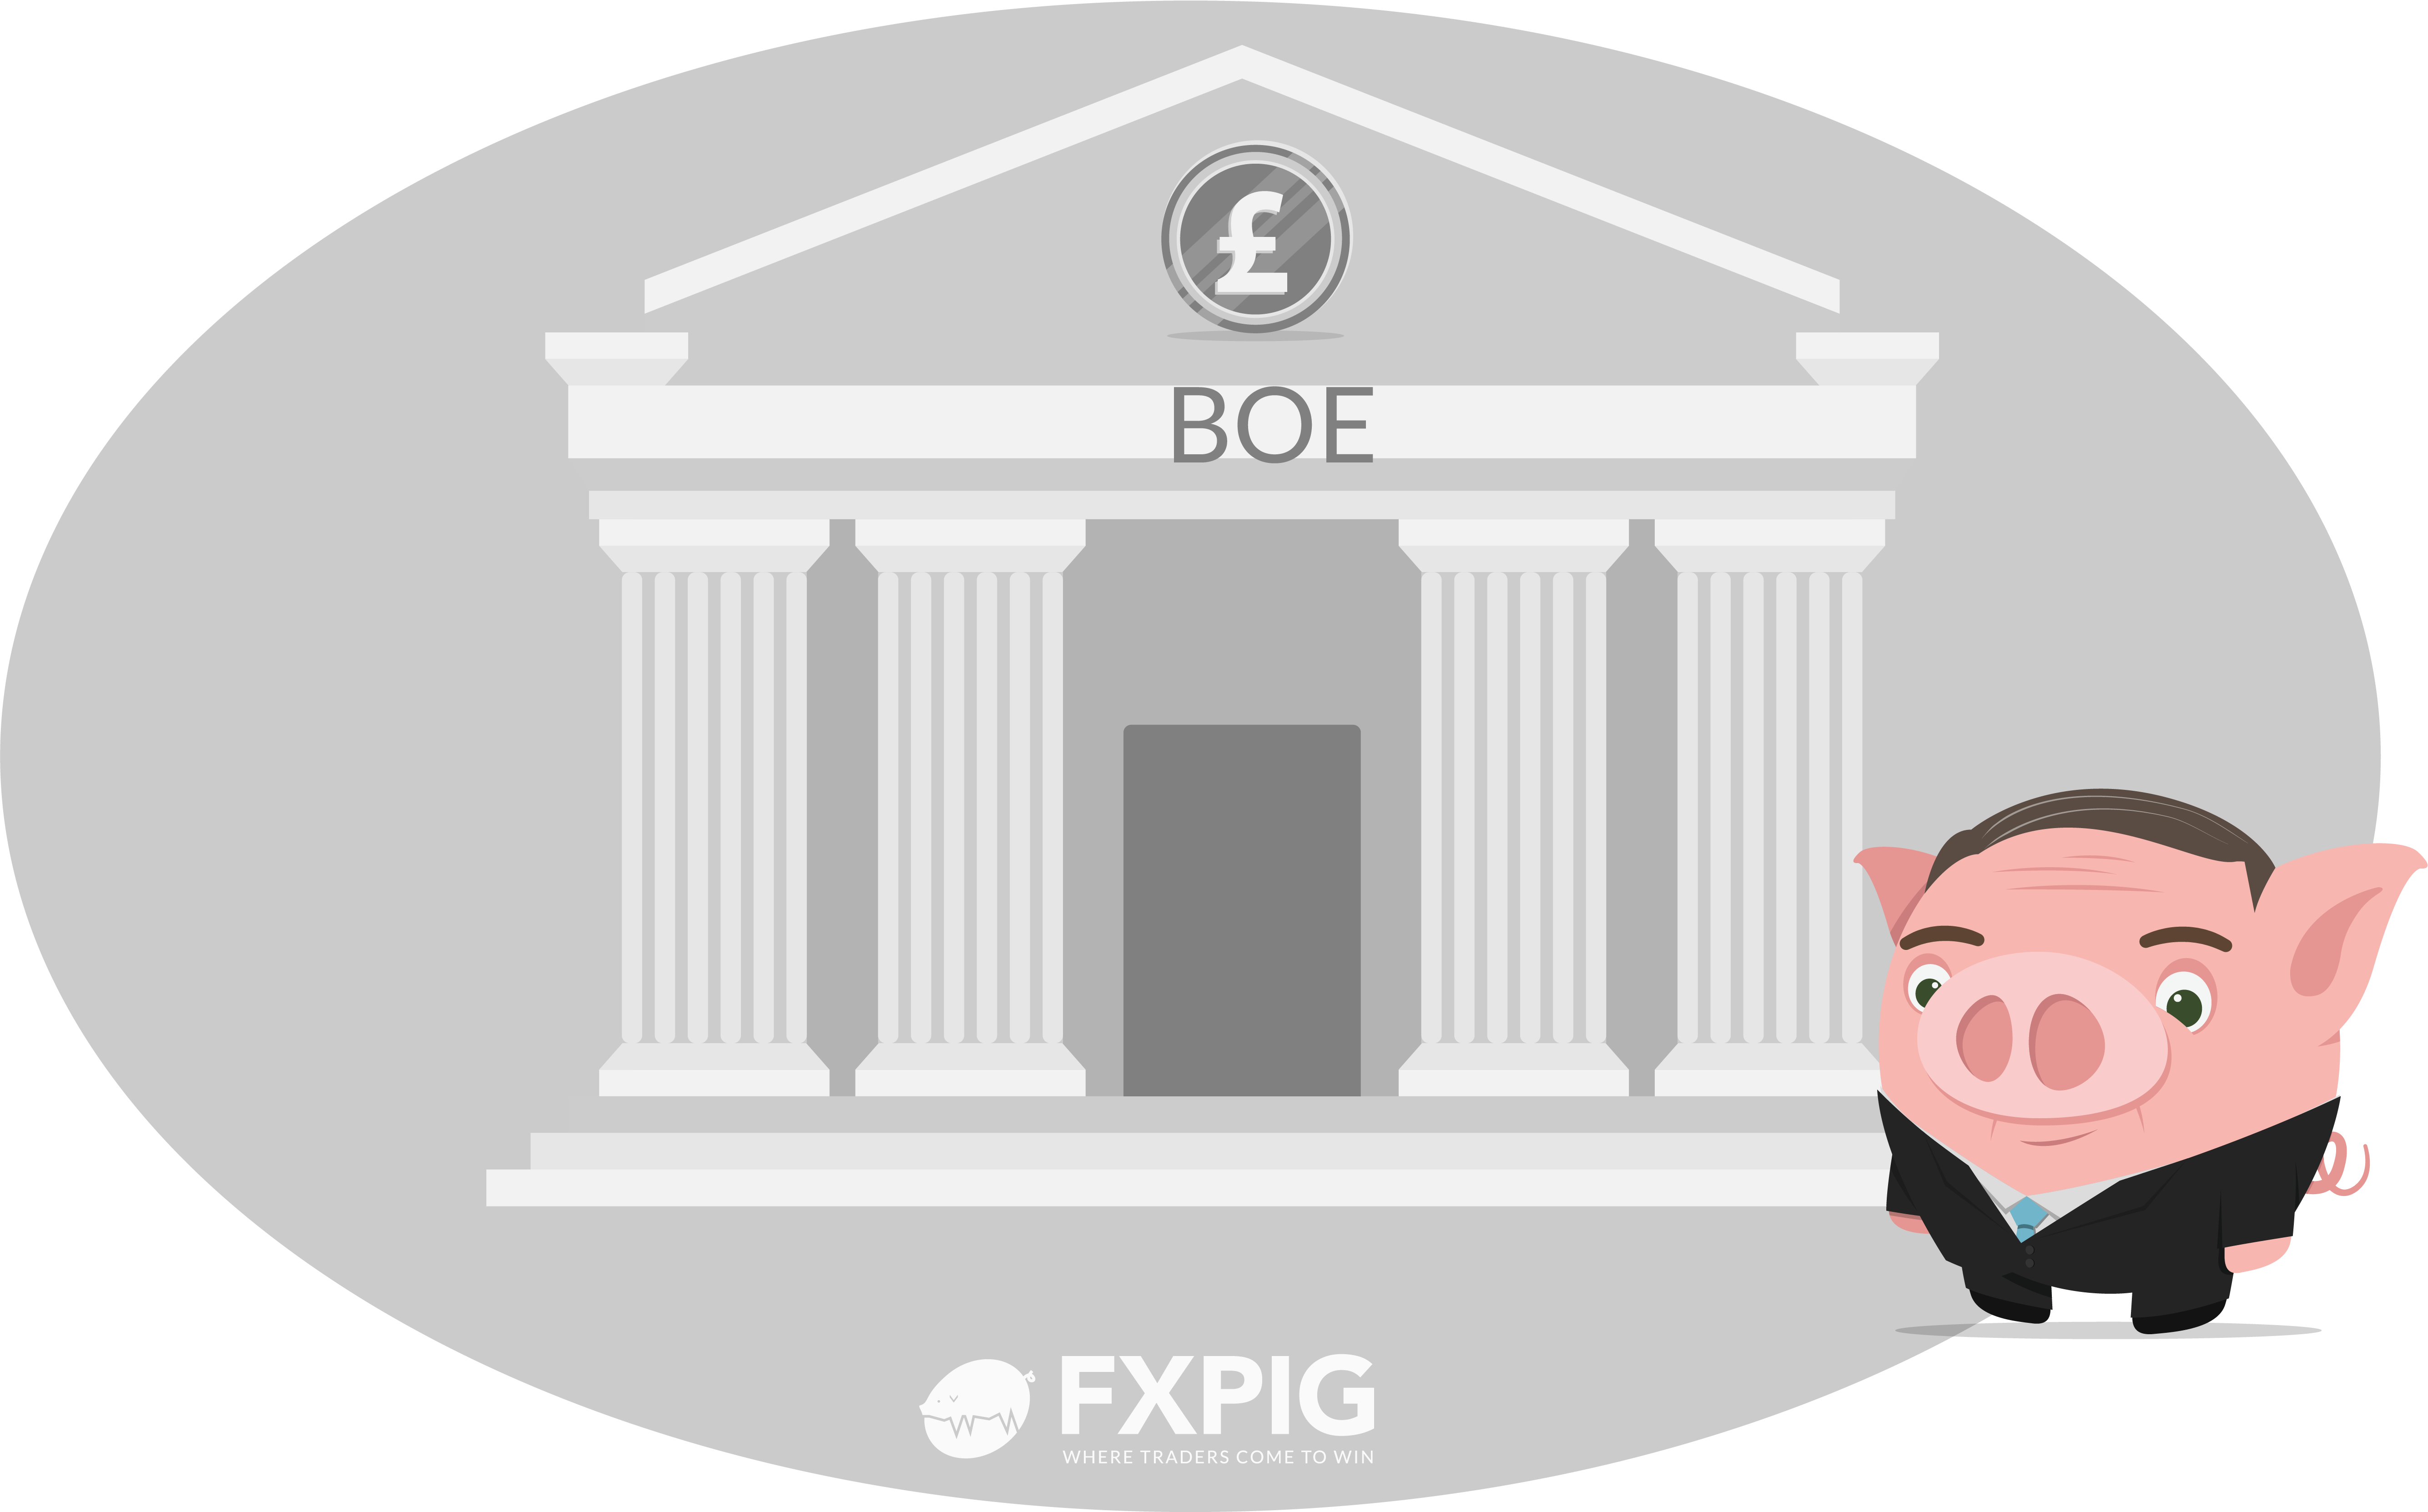 FOREX_market-analysis-and-comment_FXPIG